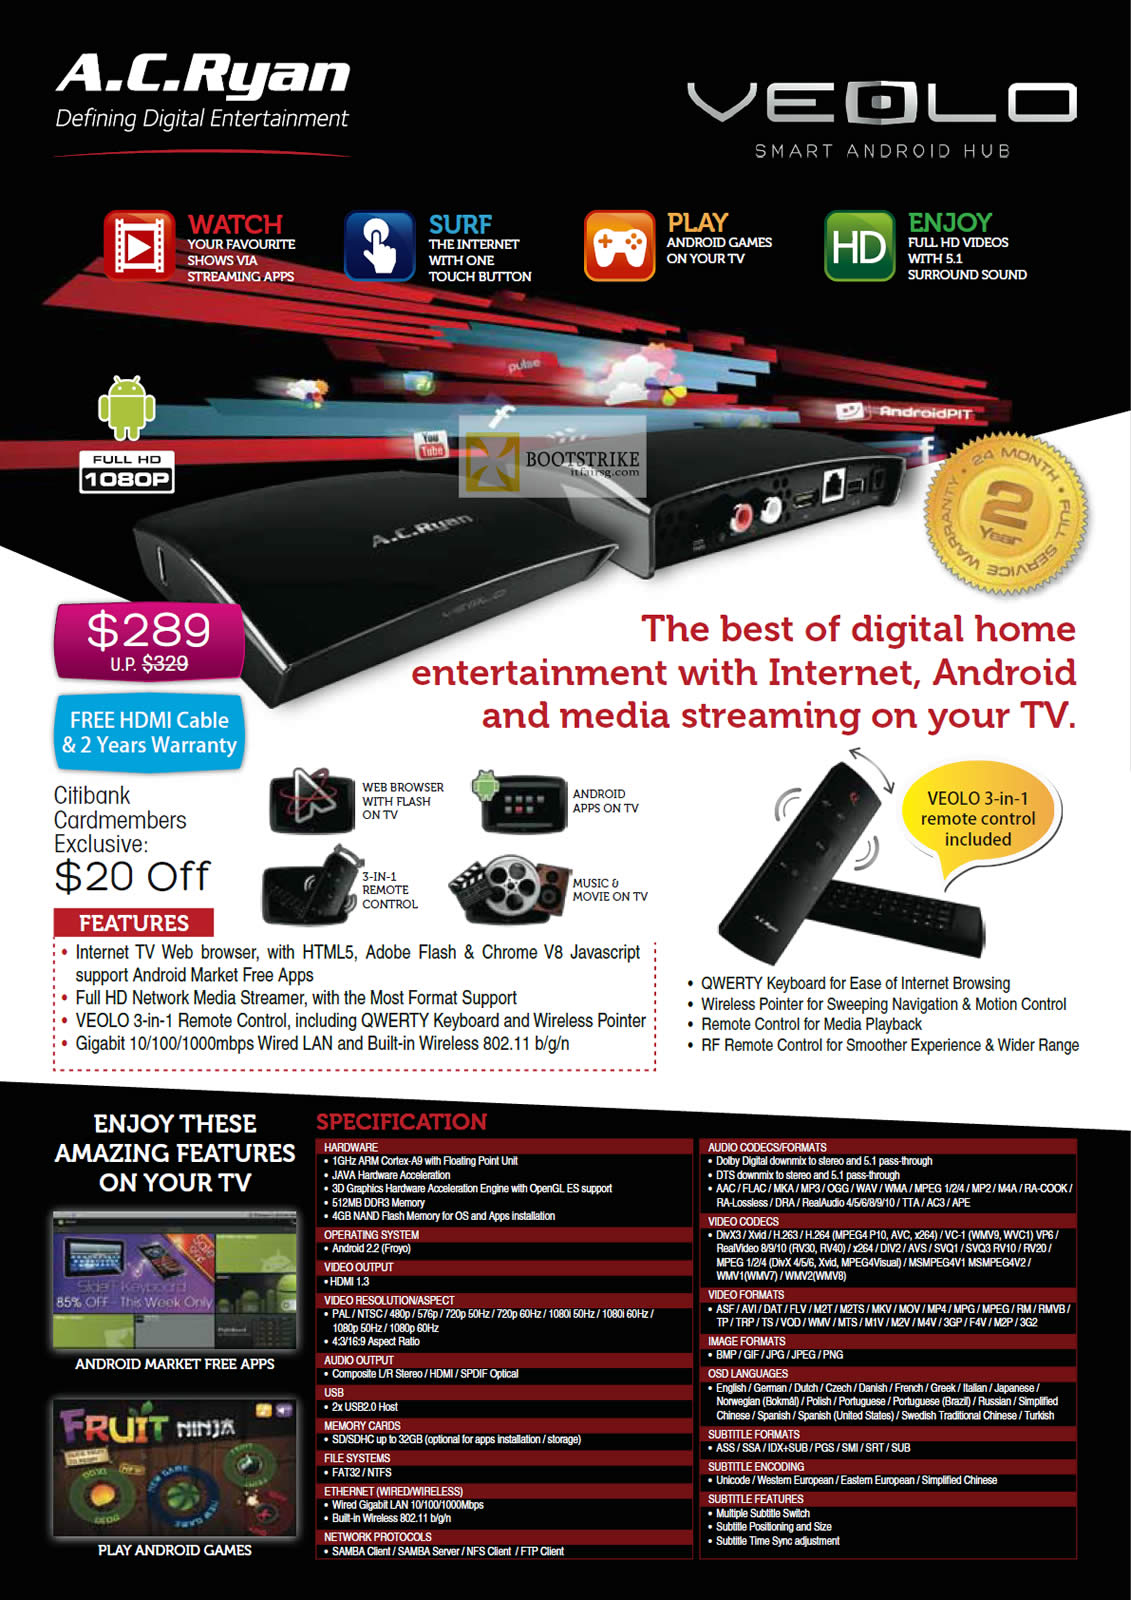 IT SHOW 2012 price list image brochure of AC Ryan Veolo Smart Android Hub Android Media Player, Specifications